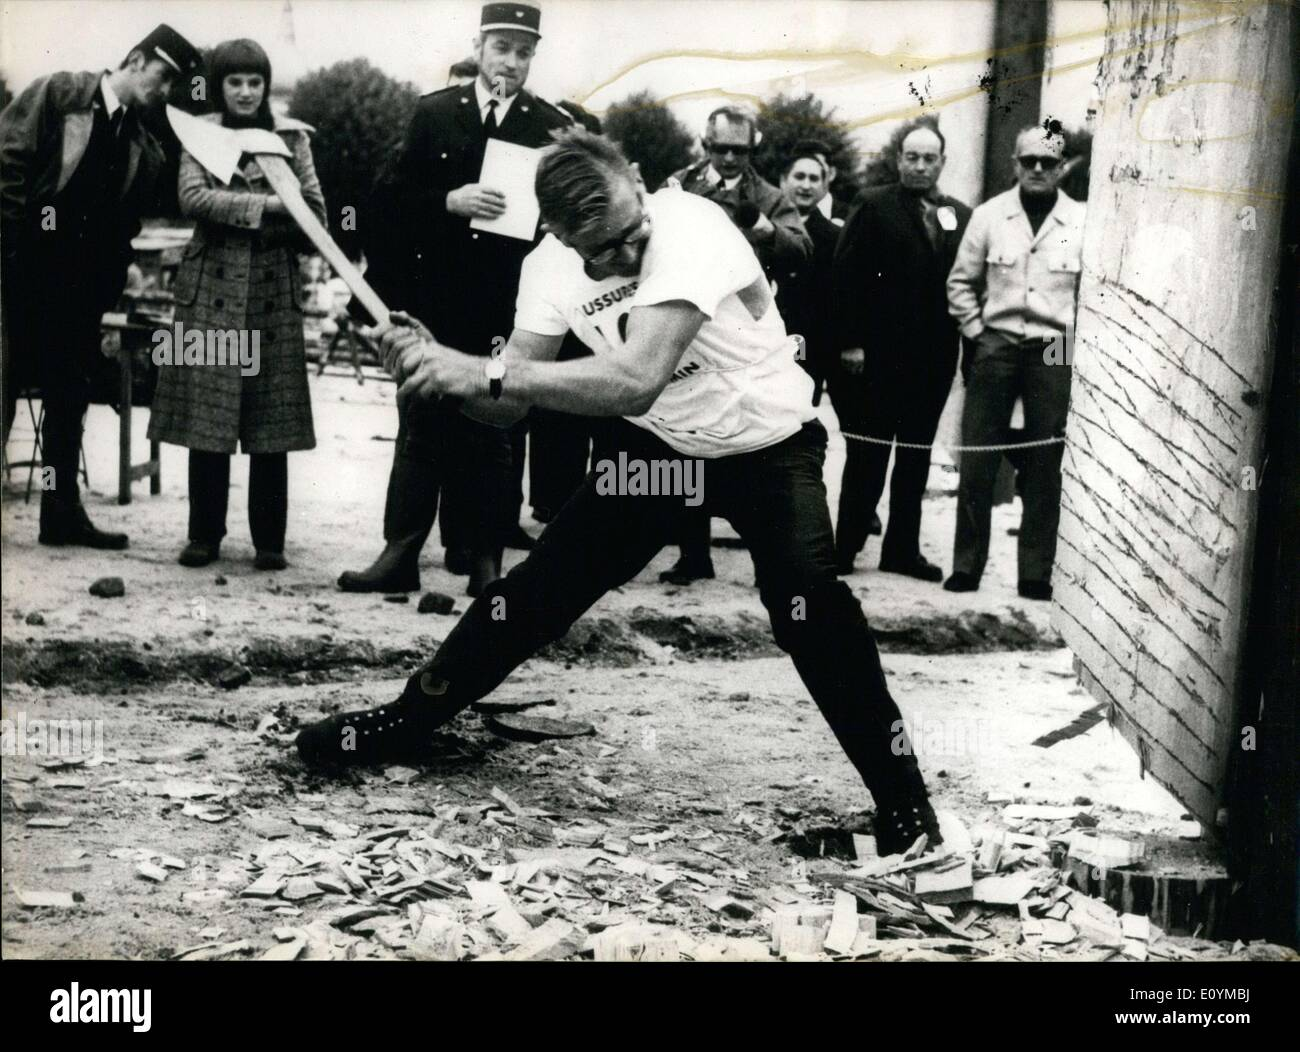 Oct. 05, 1970 - Maurice Poirot During a Lumberjack Competition - Stock Image